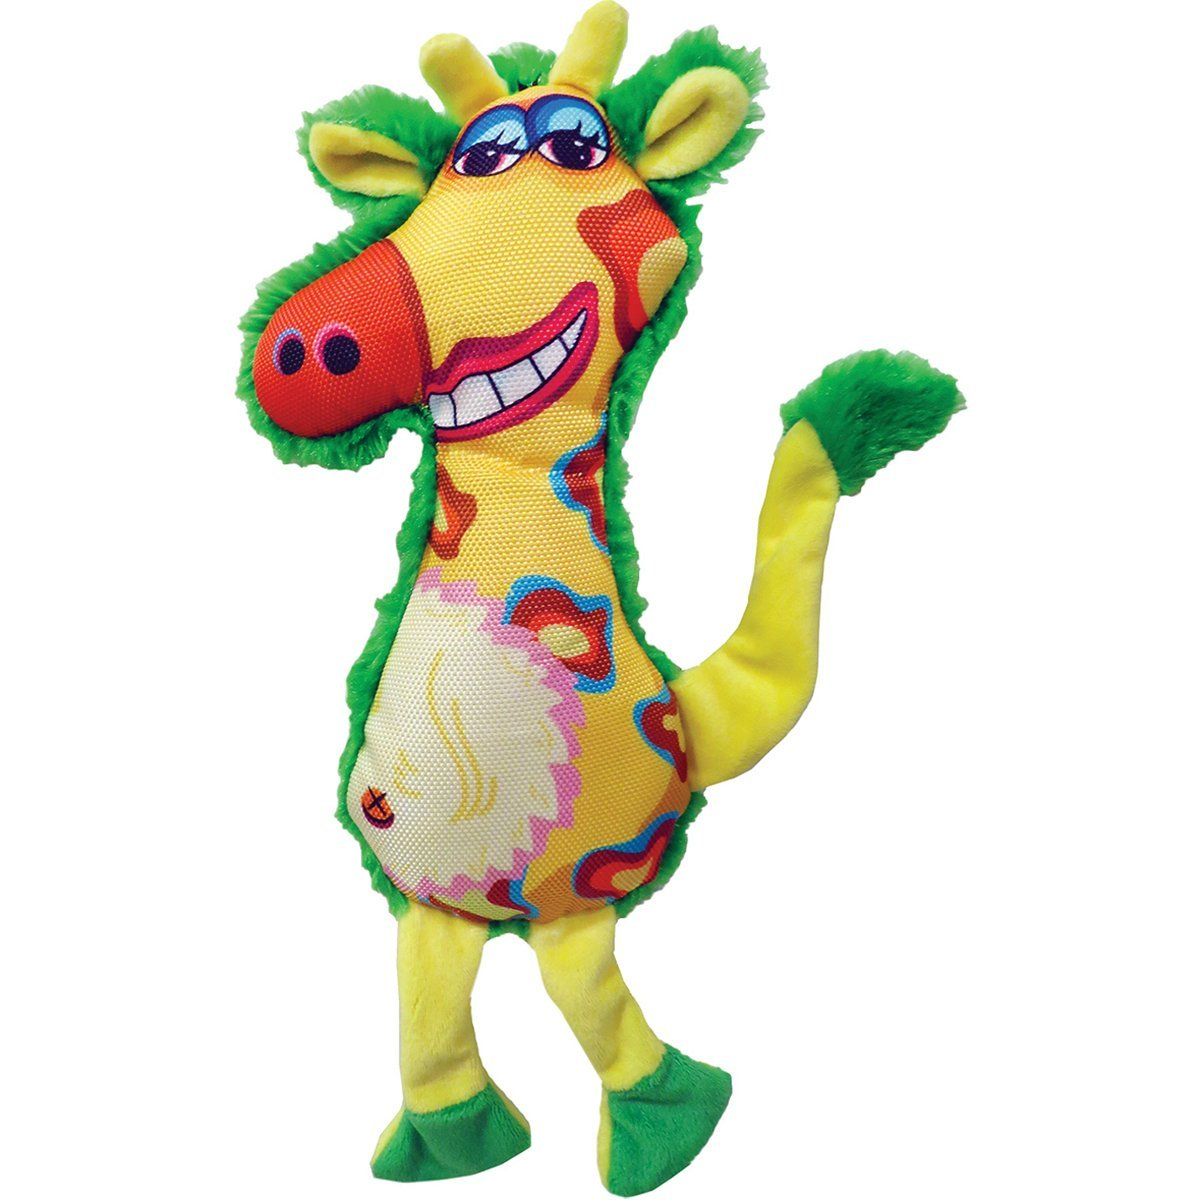 Plush Gina Giraffe Dog Toy 13""